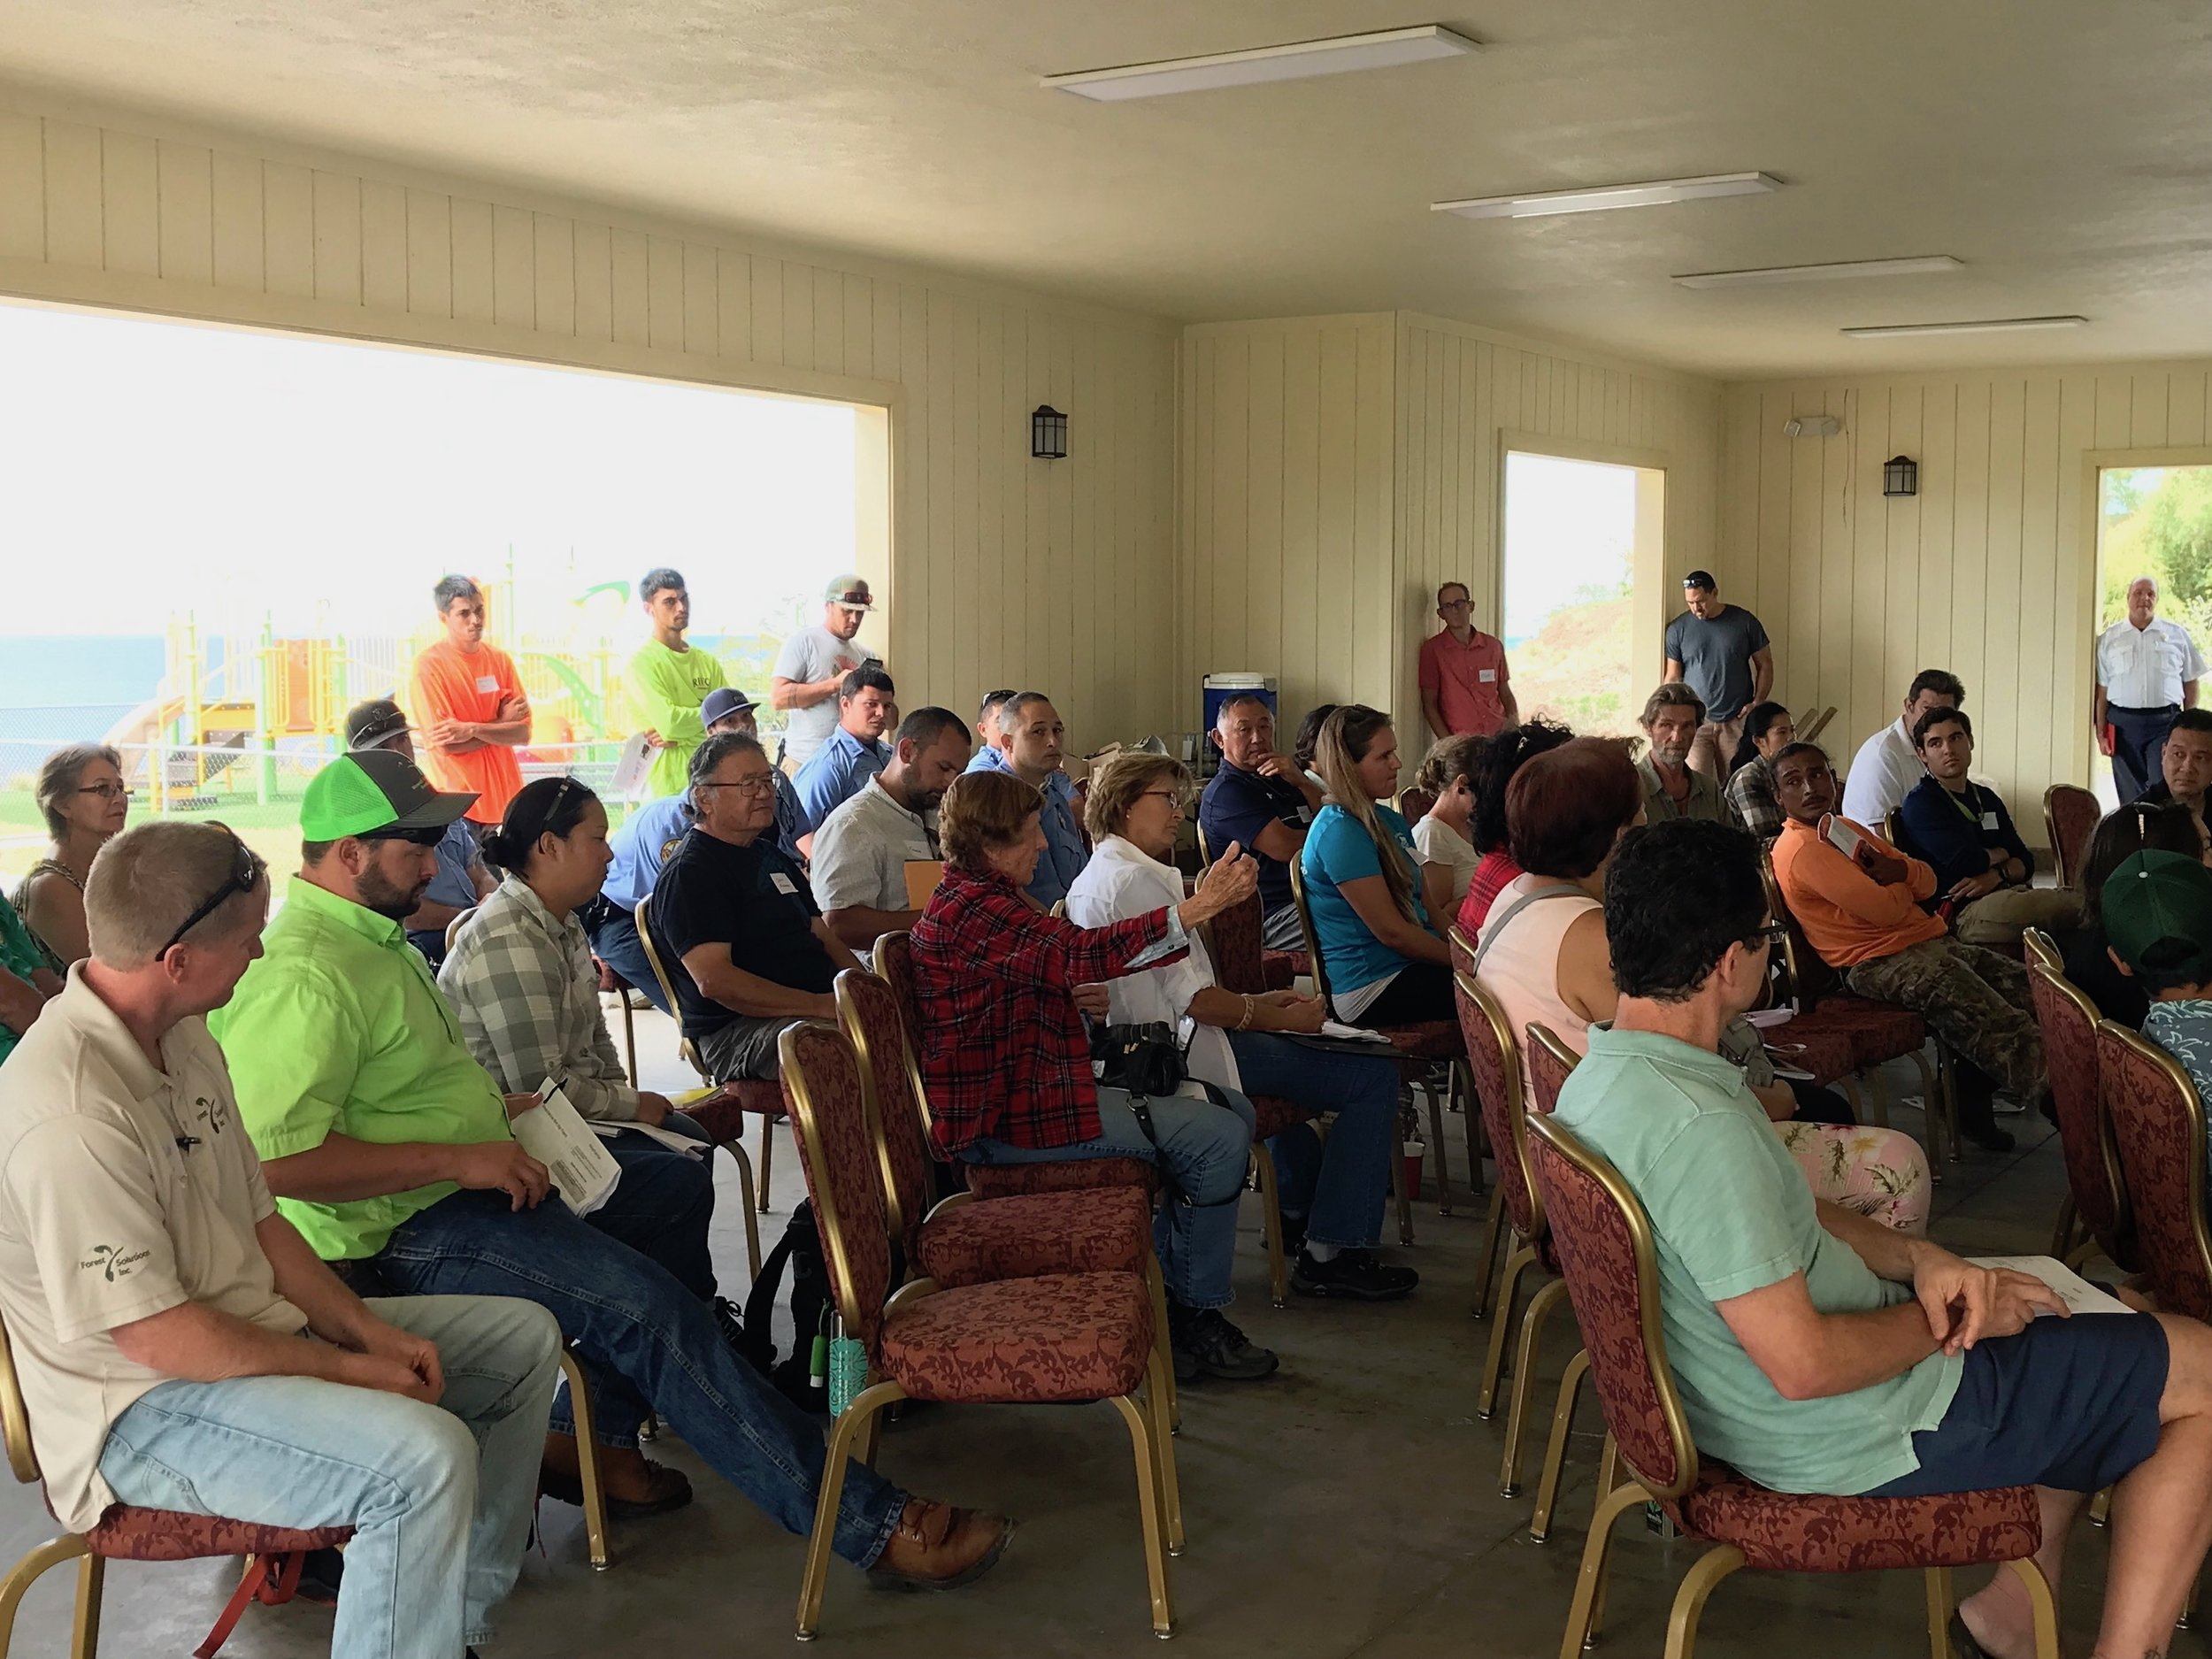 Hawaii Island Kailapa Vegetative Fuels Management Collaborative Action Planning Workshop_2_26_2019_66.jpg